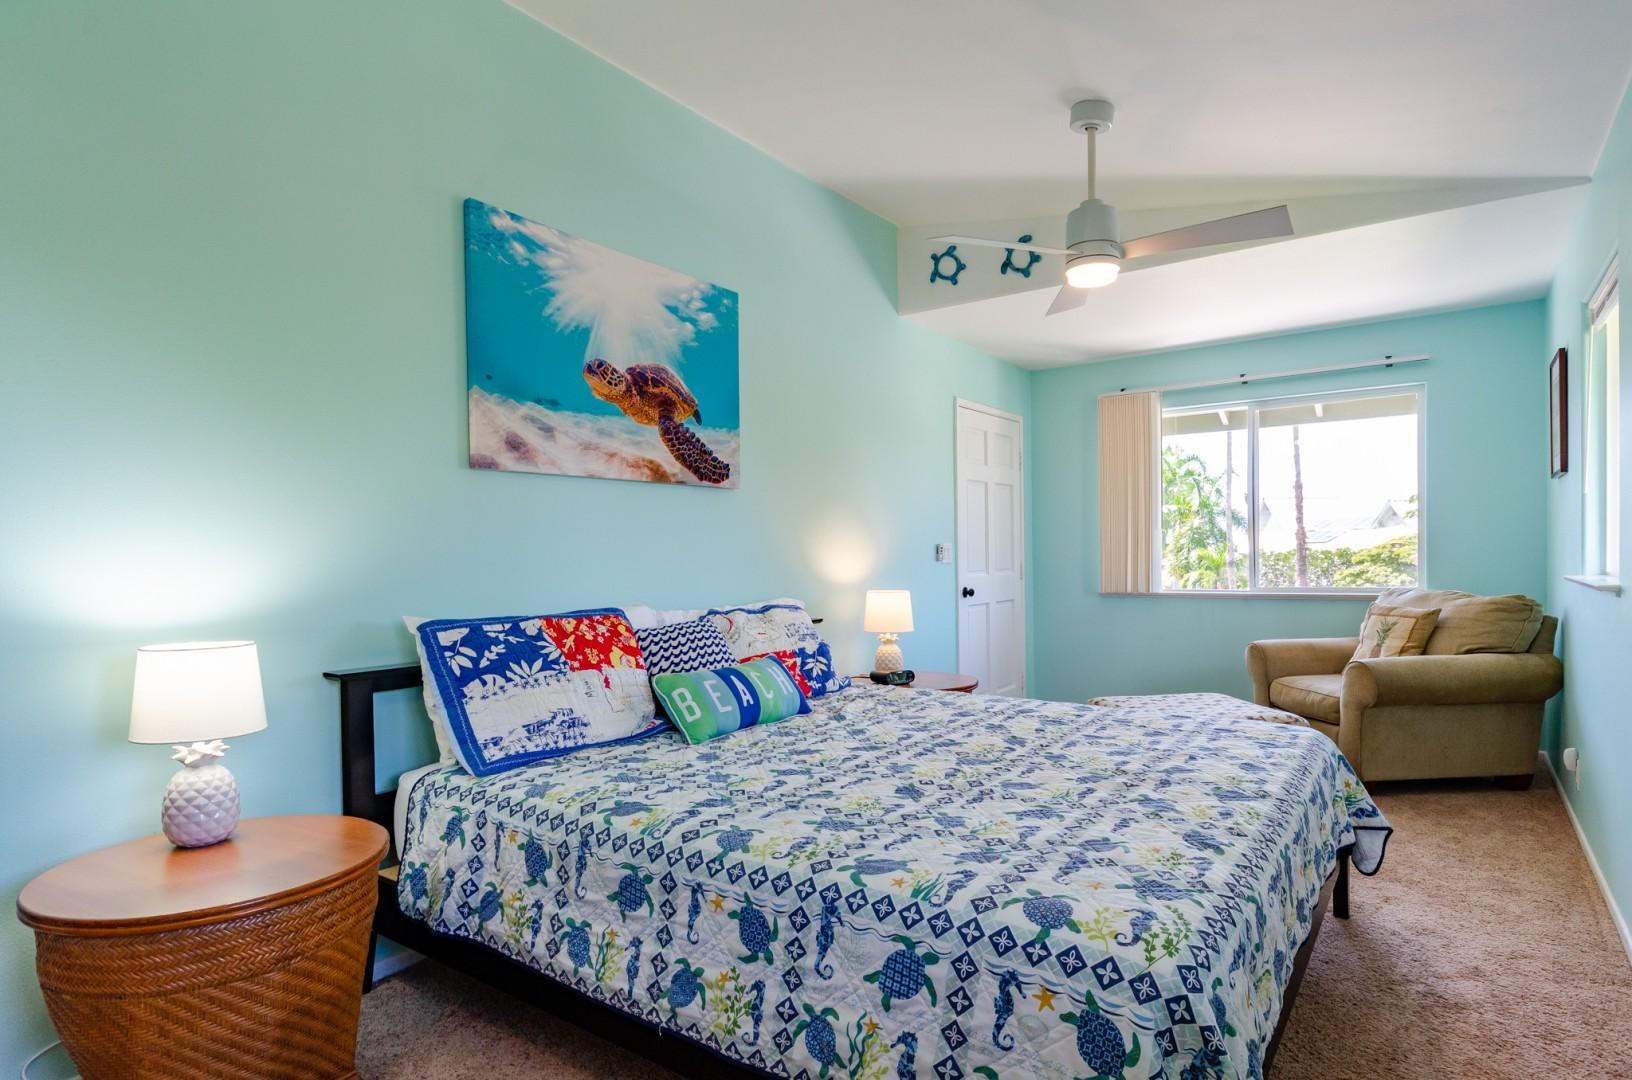 Tropical decor with tasteful touches